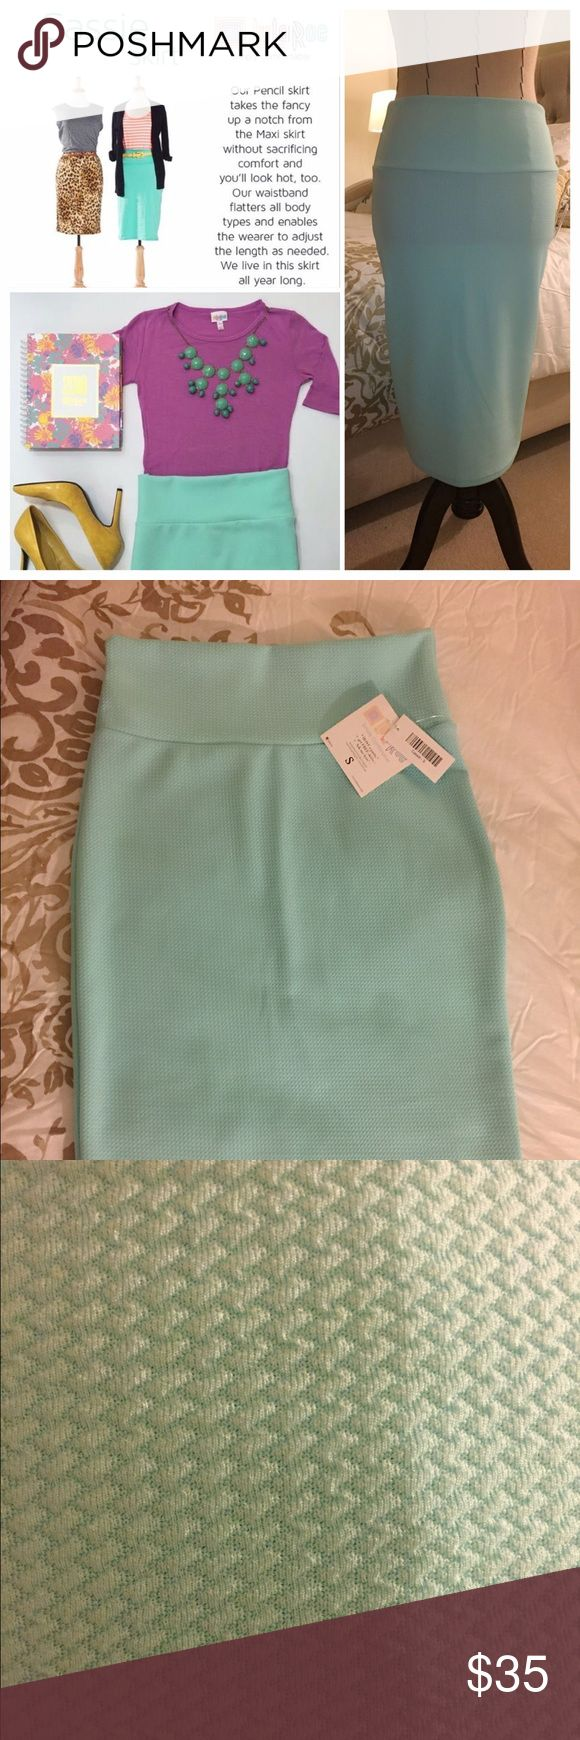 NWT - LulaRoe Cassie Skirt NWT - LulaRoe Cassie Skirt. Maxi pencil skirt with waistband. Waistband allows you to adjust the length as needed. It can also be worn as an infinity scarf, tube top tunic and a high waisted skirt. Color: Mint green. No defects. LuLaRoe Skirts Maxi